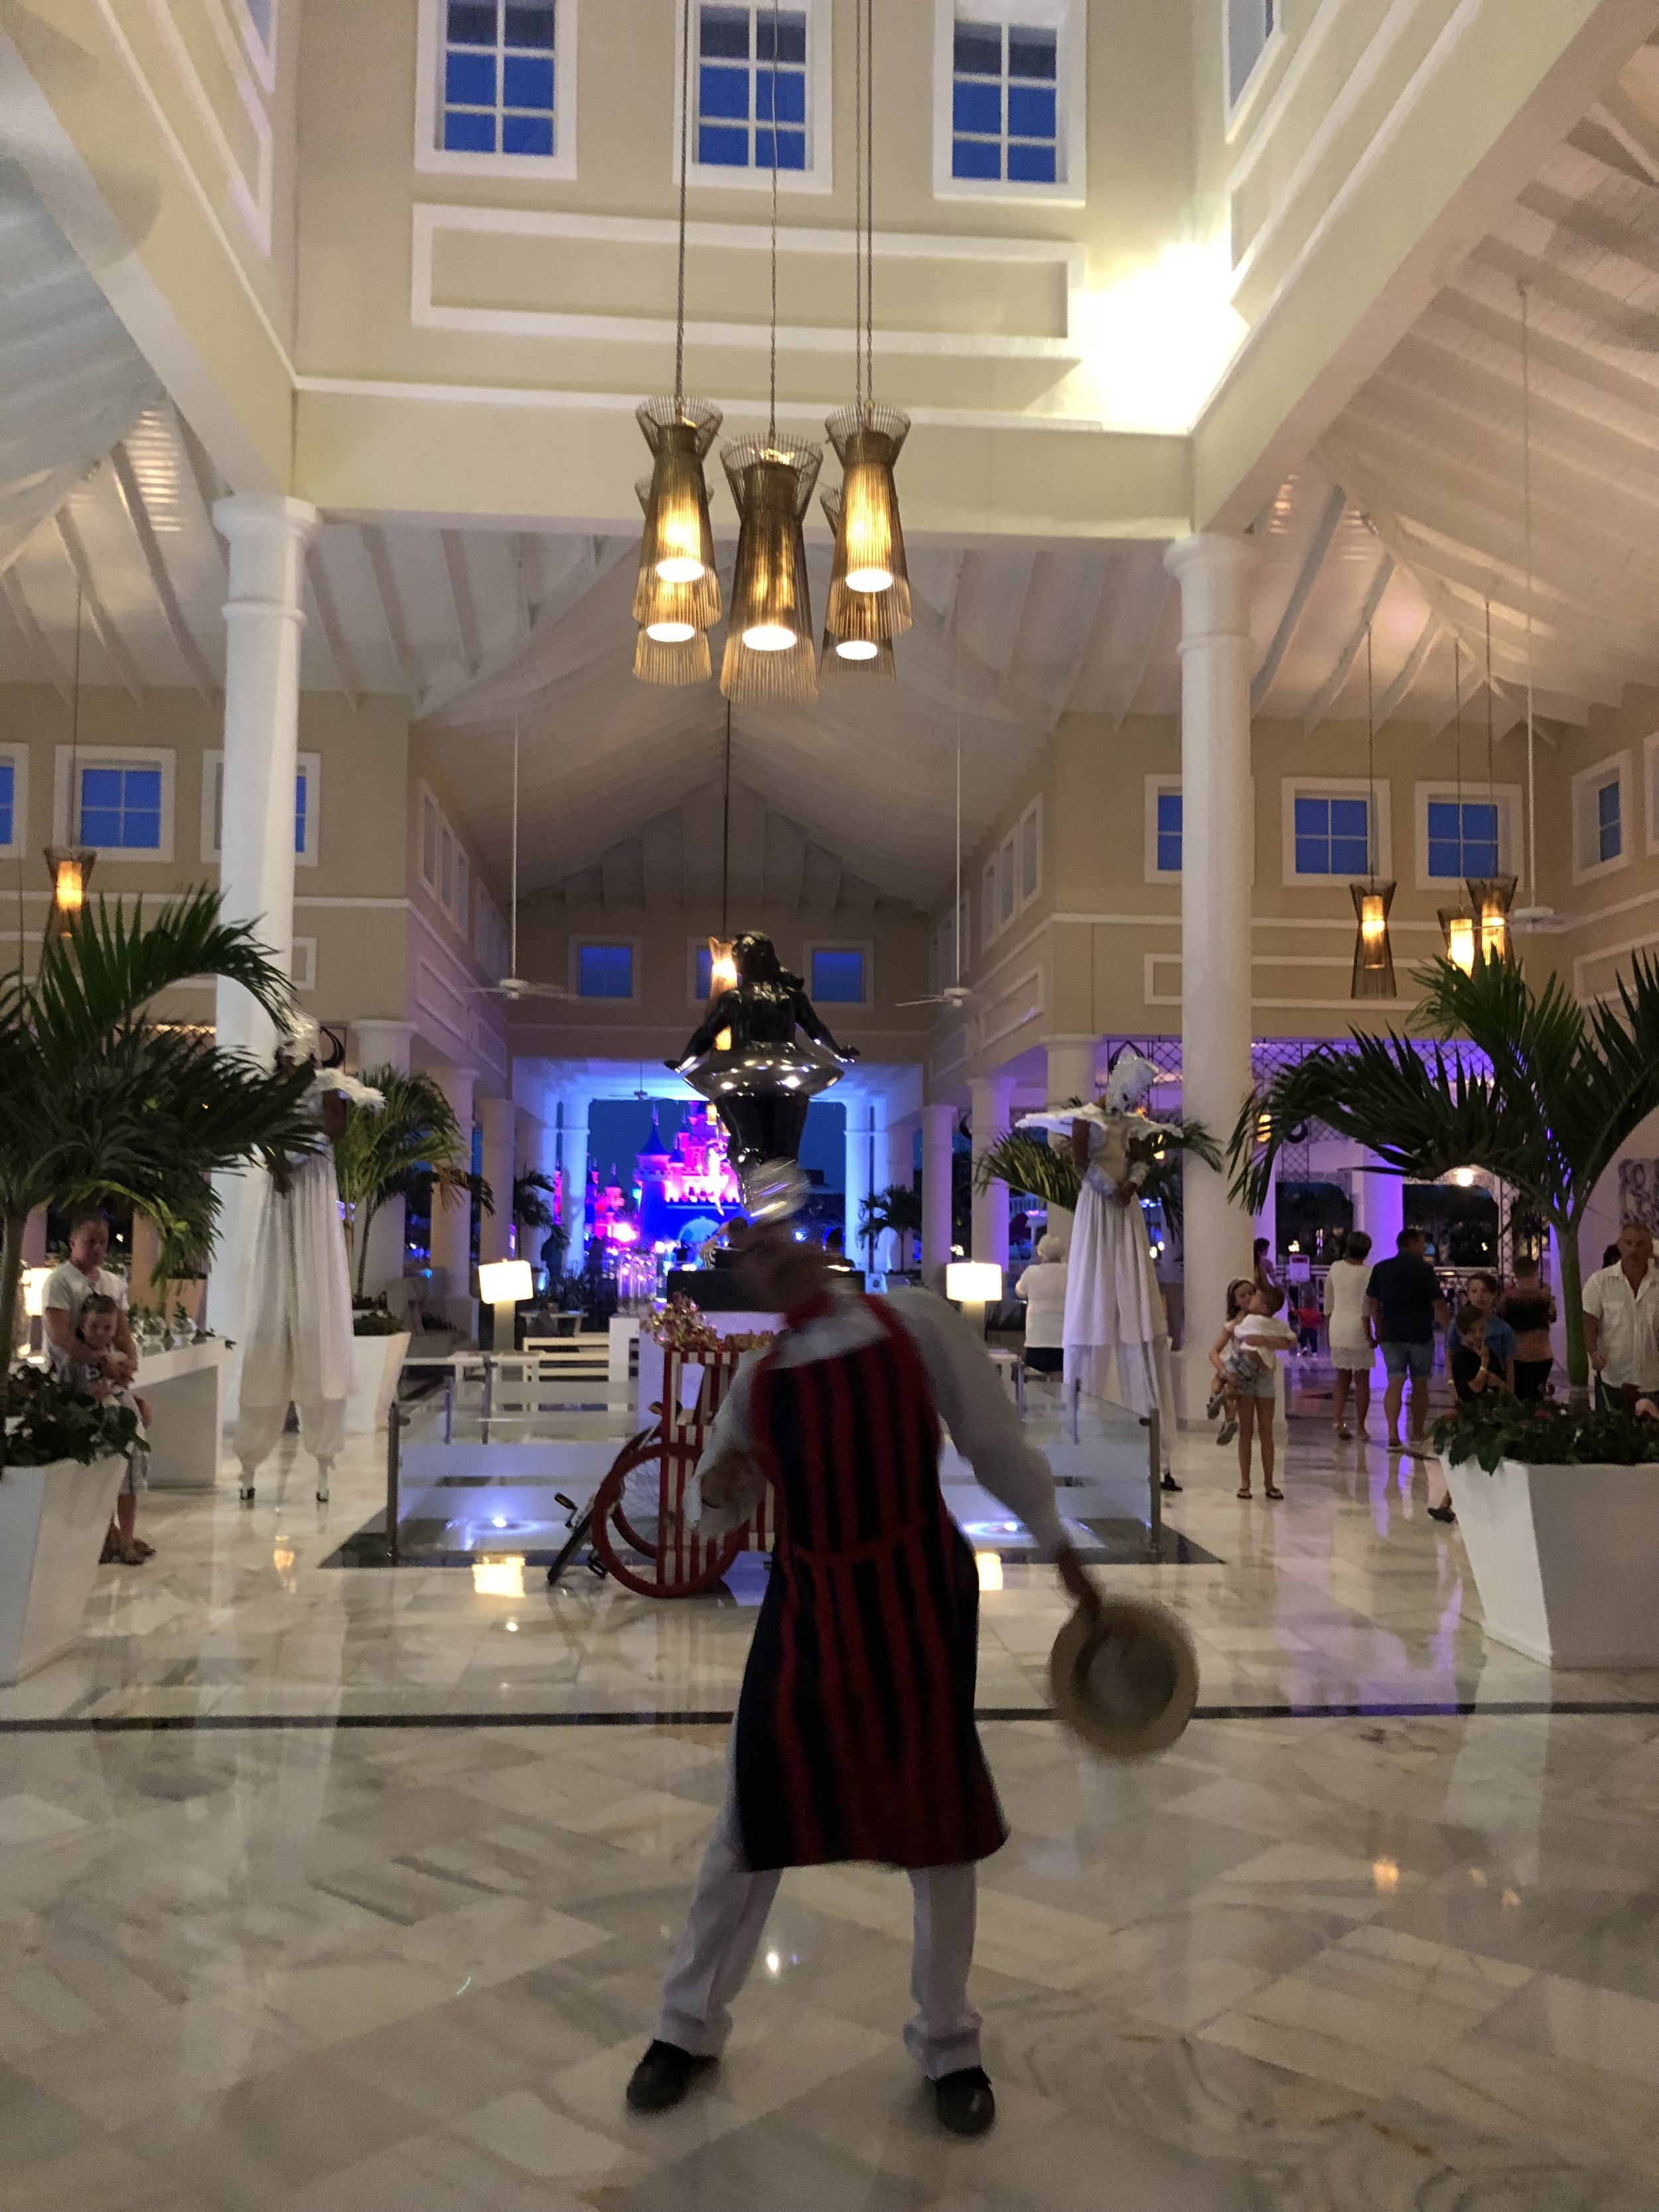 Upon entering the main lobby, I was greeted by entertainers as the theme for the night was the Circus.